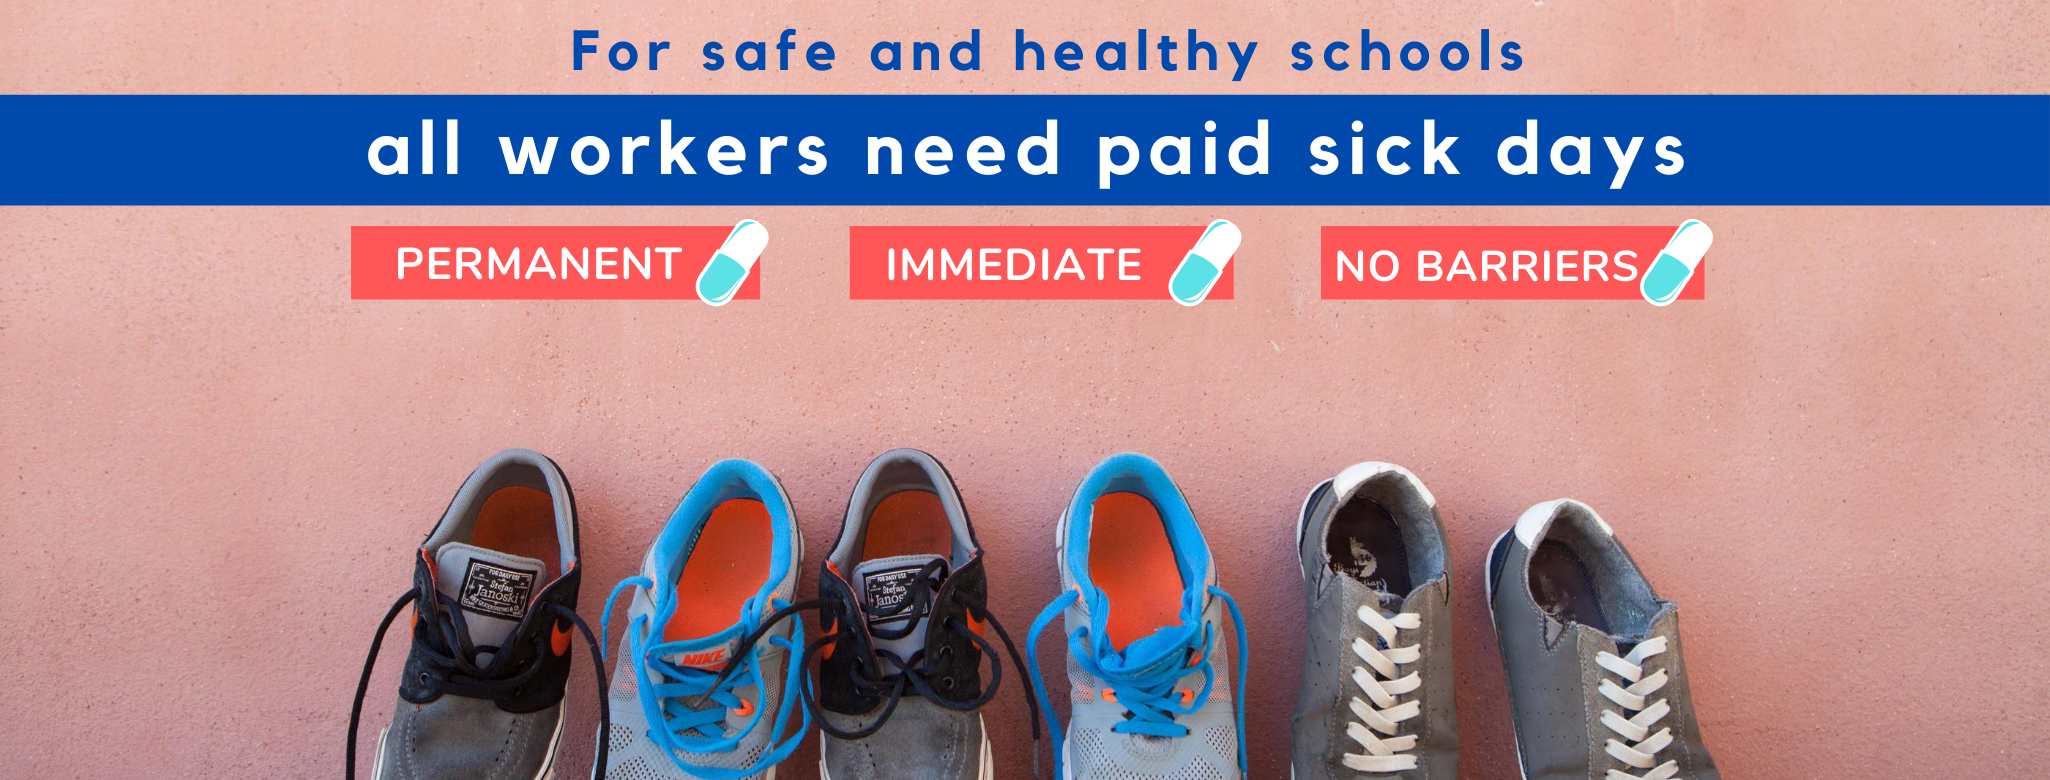 Safe Schools need Paid Sick Days